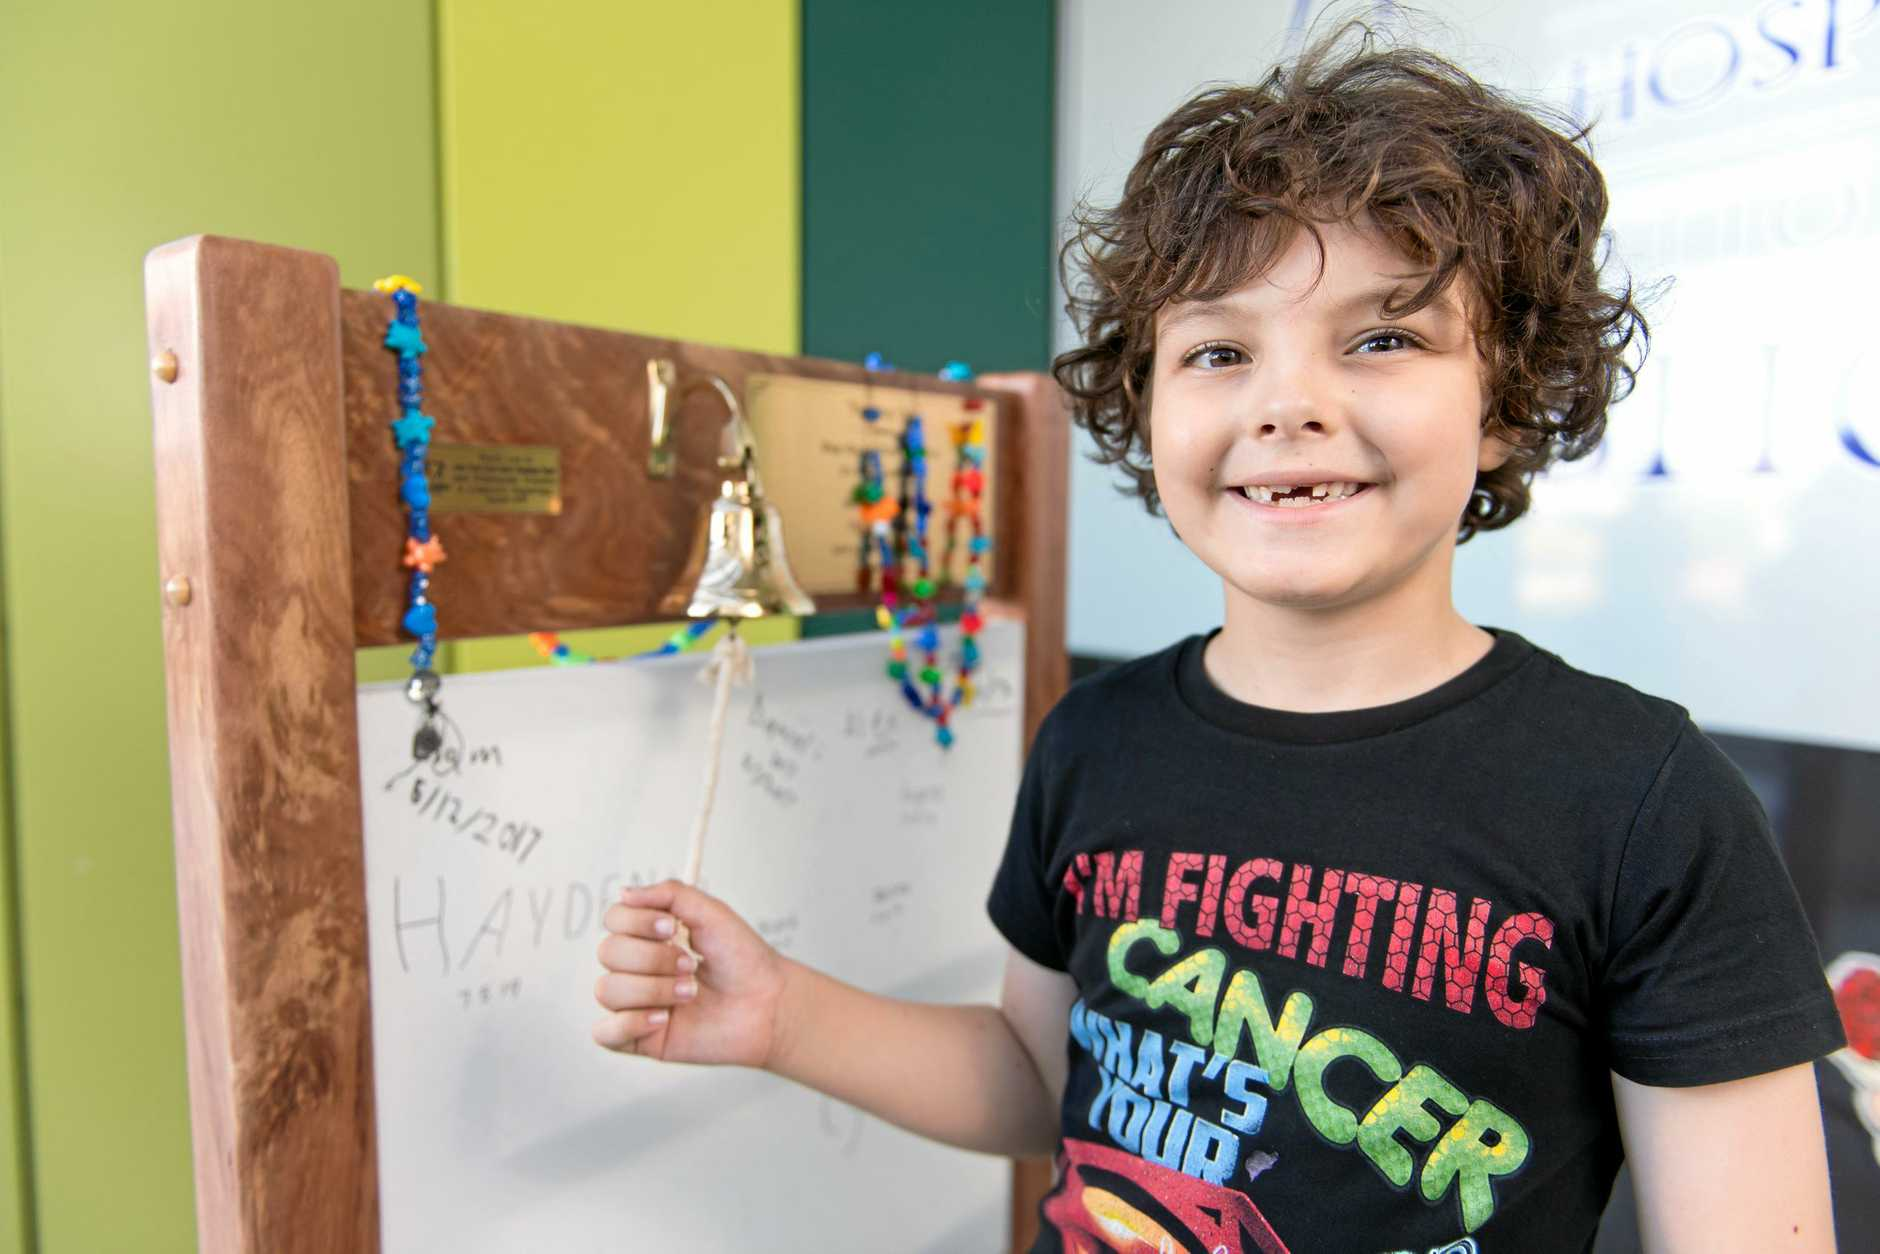 MILESTONE MOMENT: Hayden Lee rings the 'last chemo bell' after completing more than three years of treatment for leukaemia.